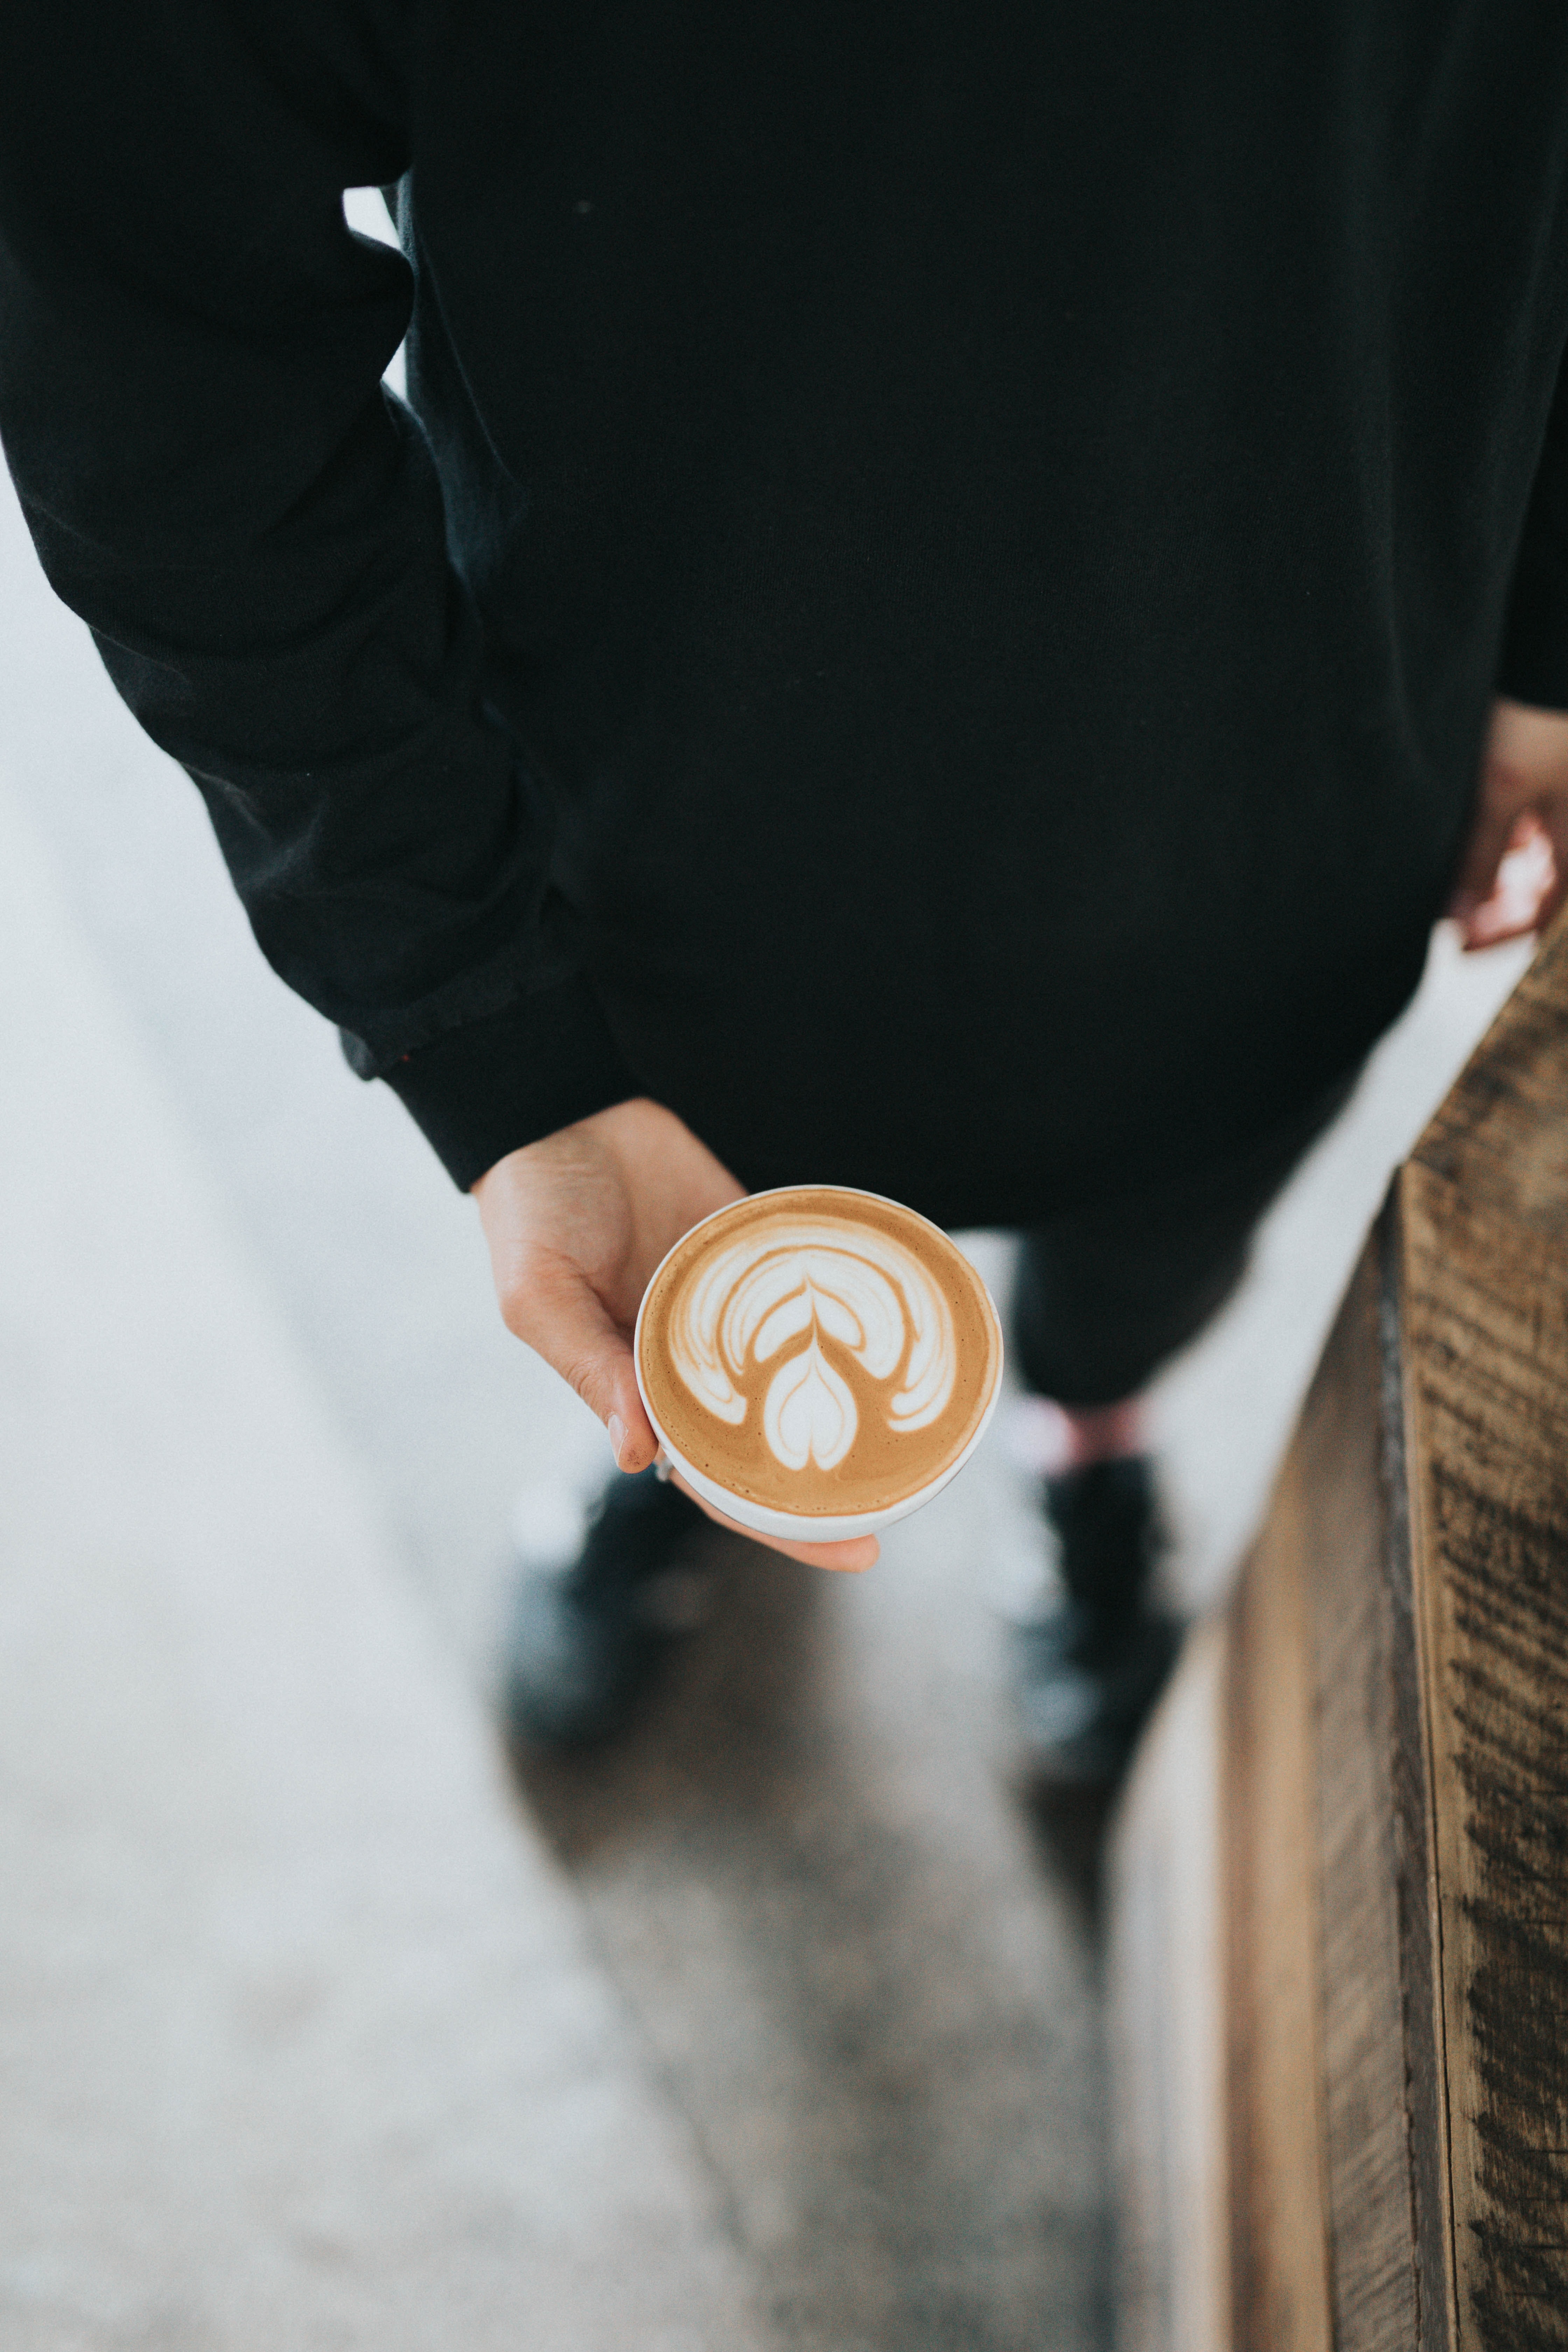 person holding cup filled with coffee